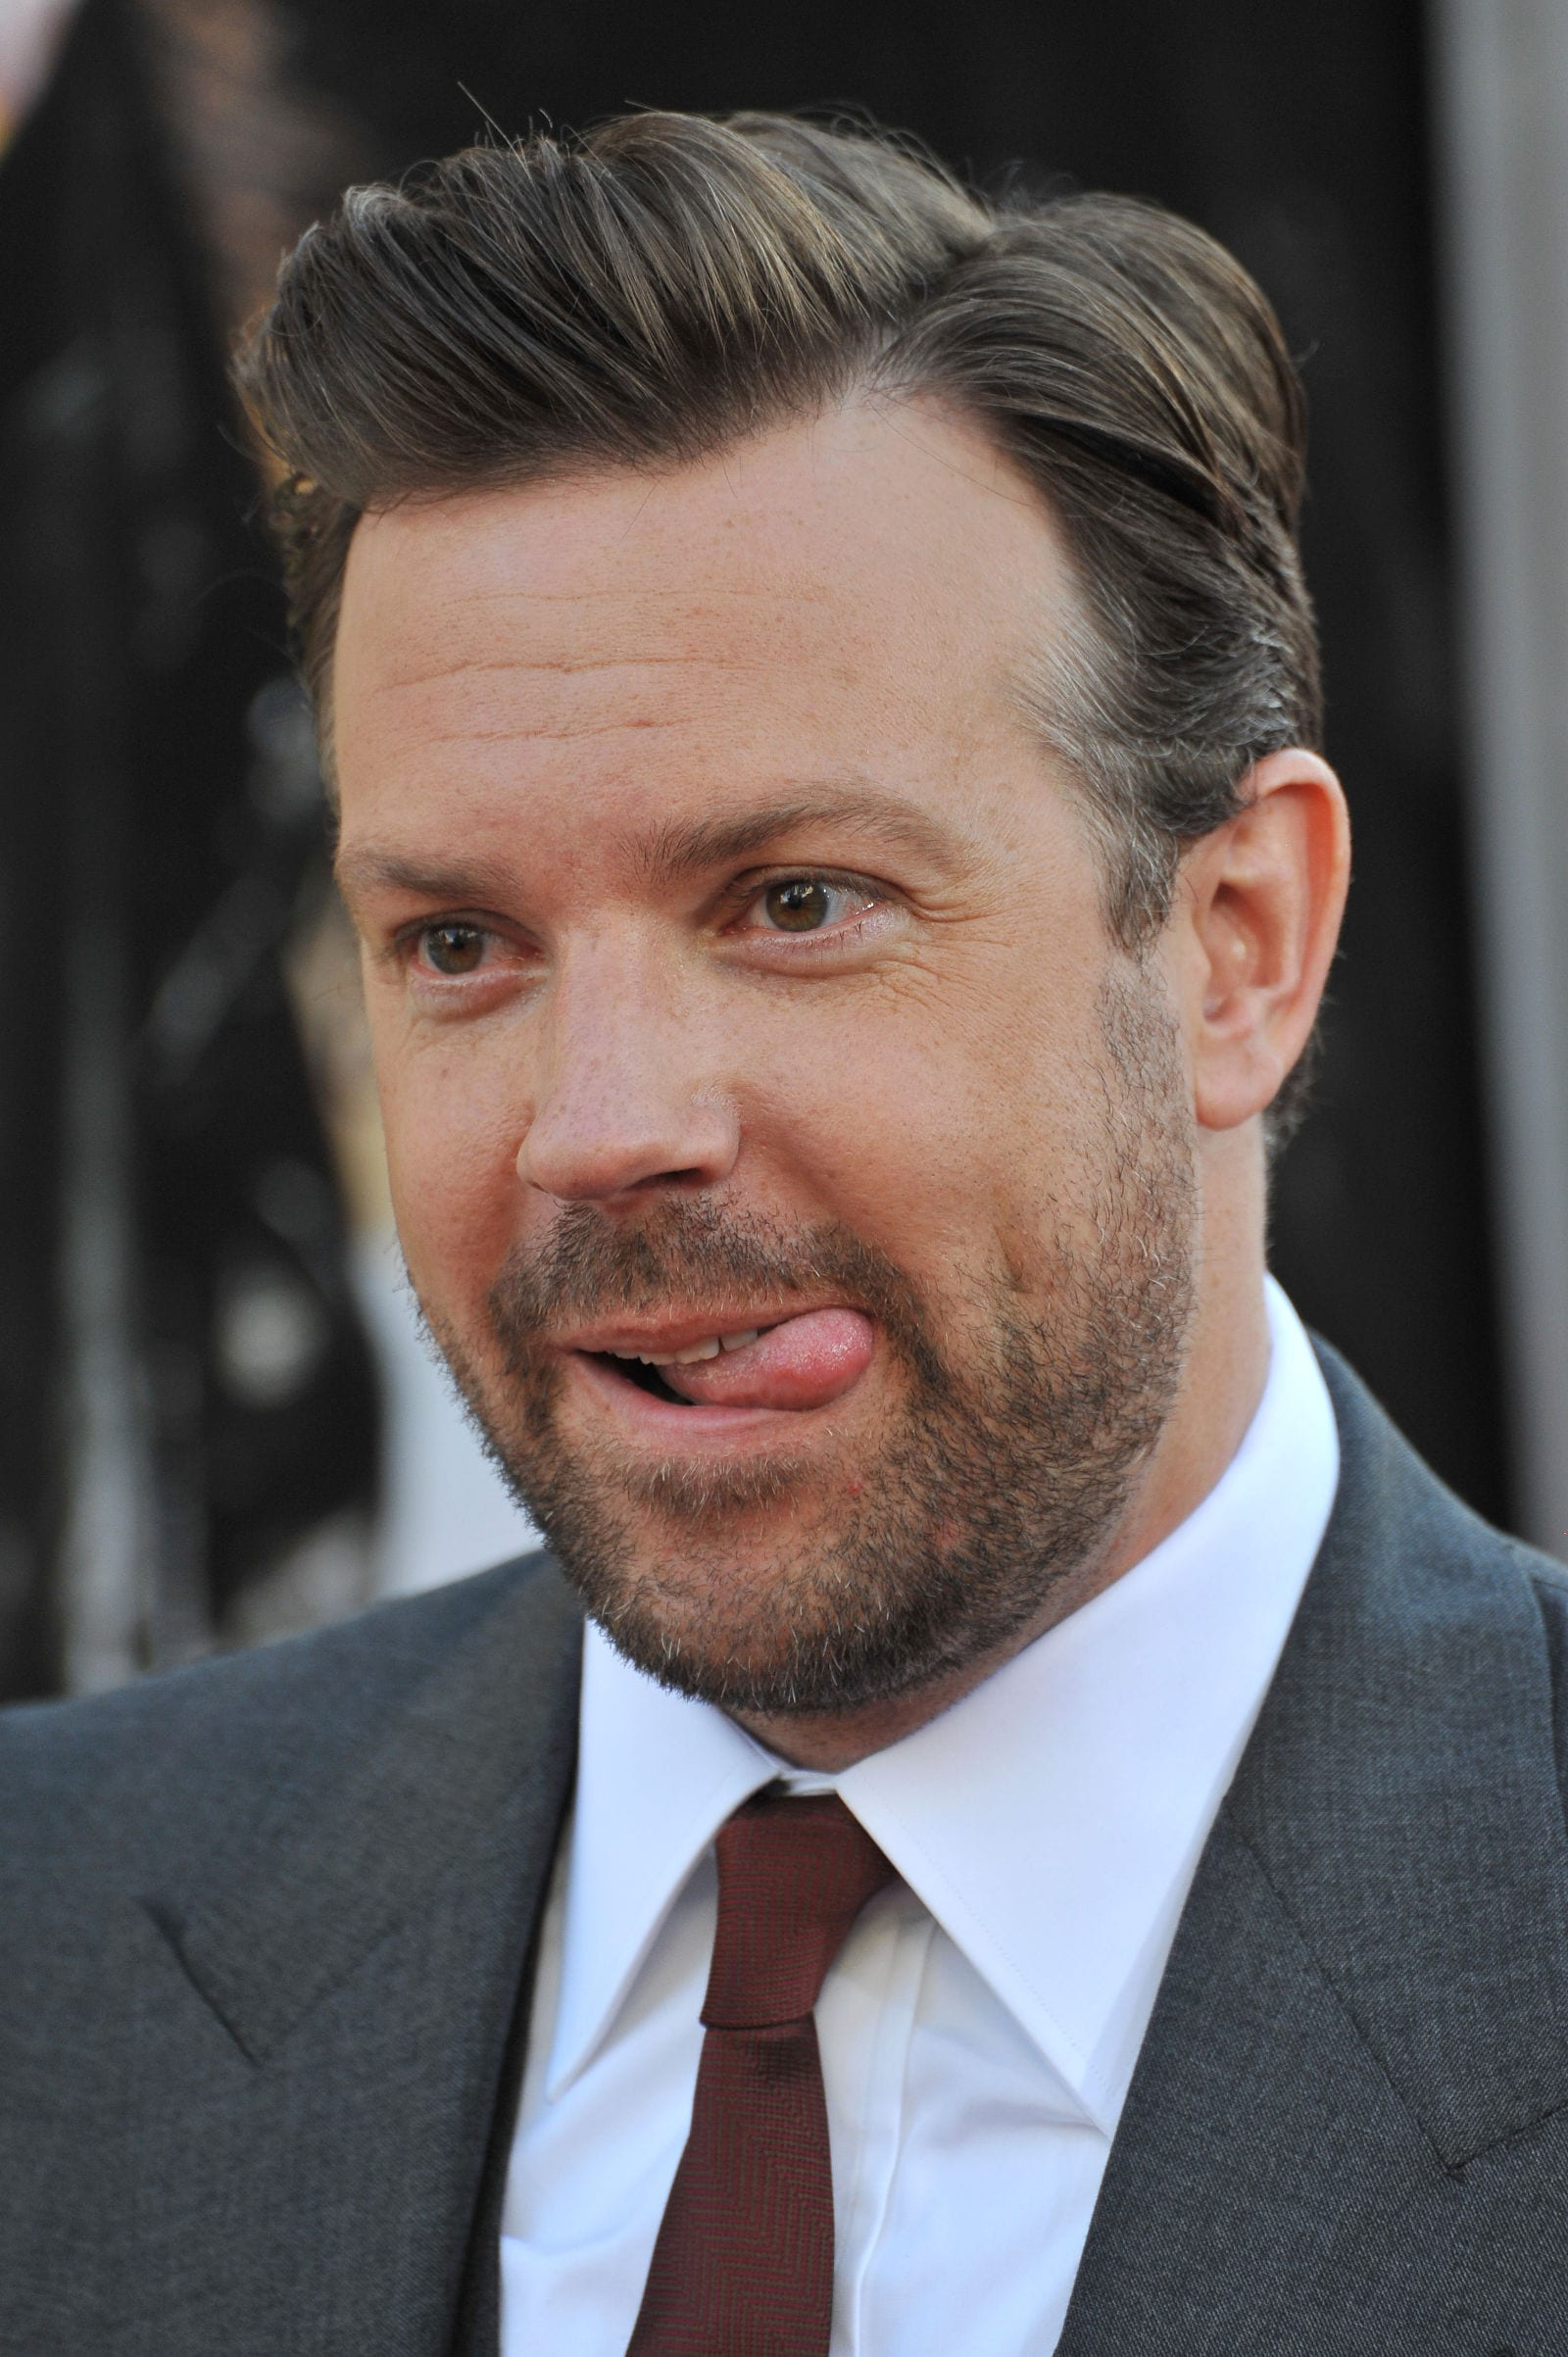 Jason Sudeikis side part by Featureflash Photo Agency